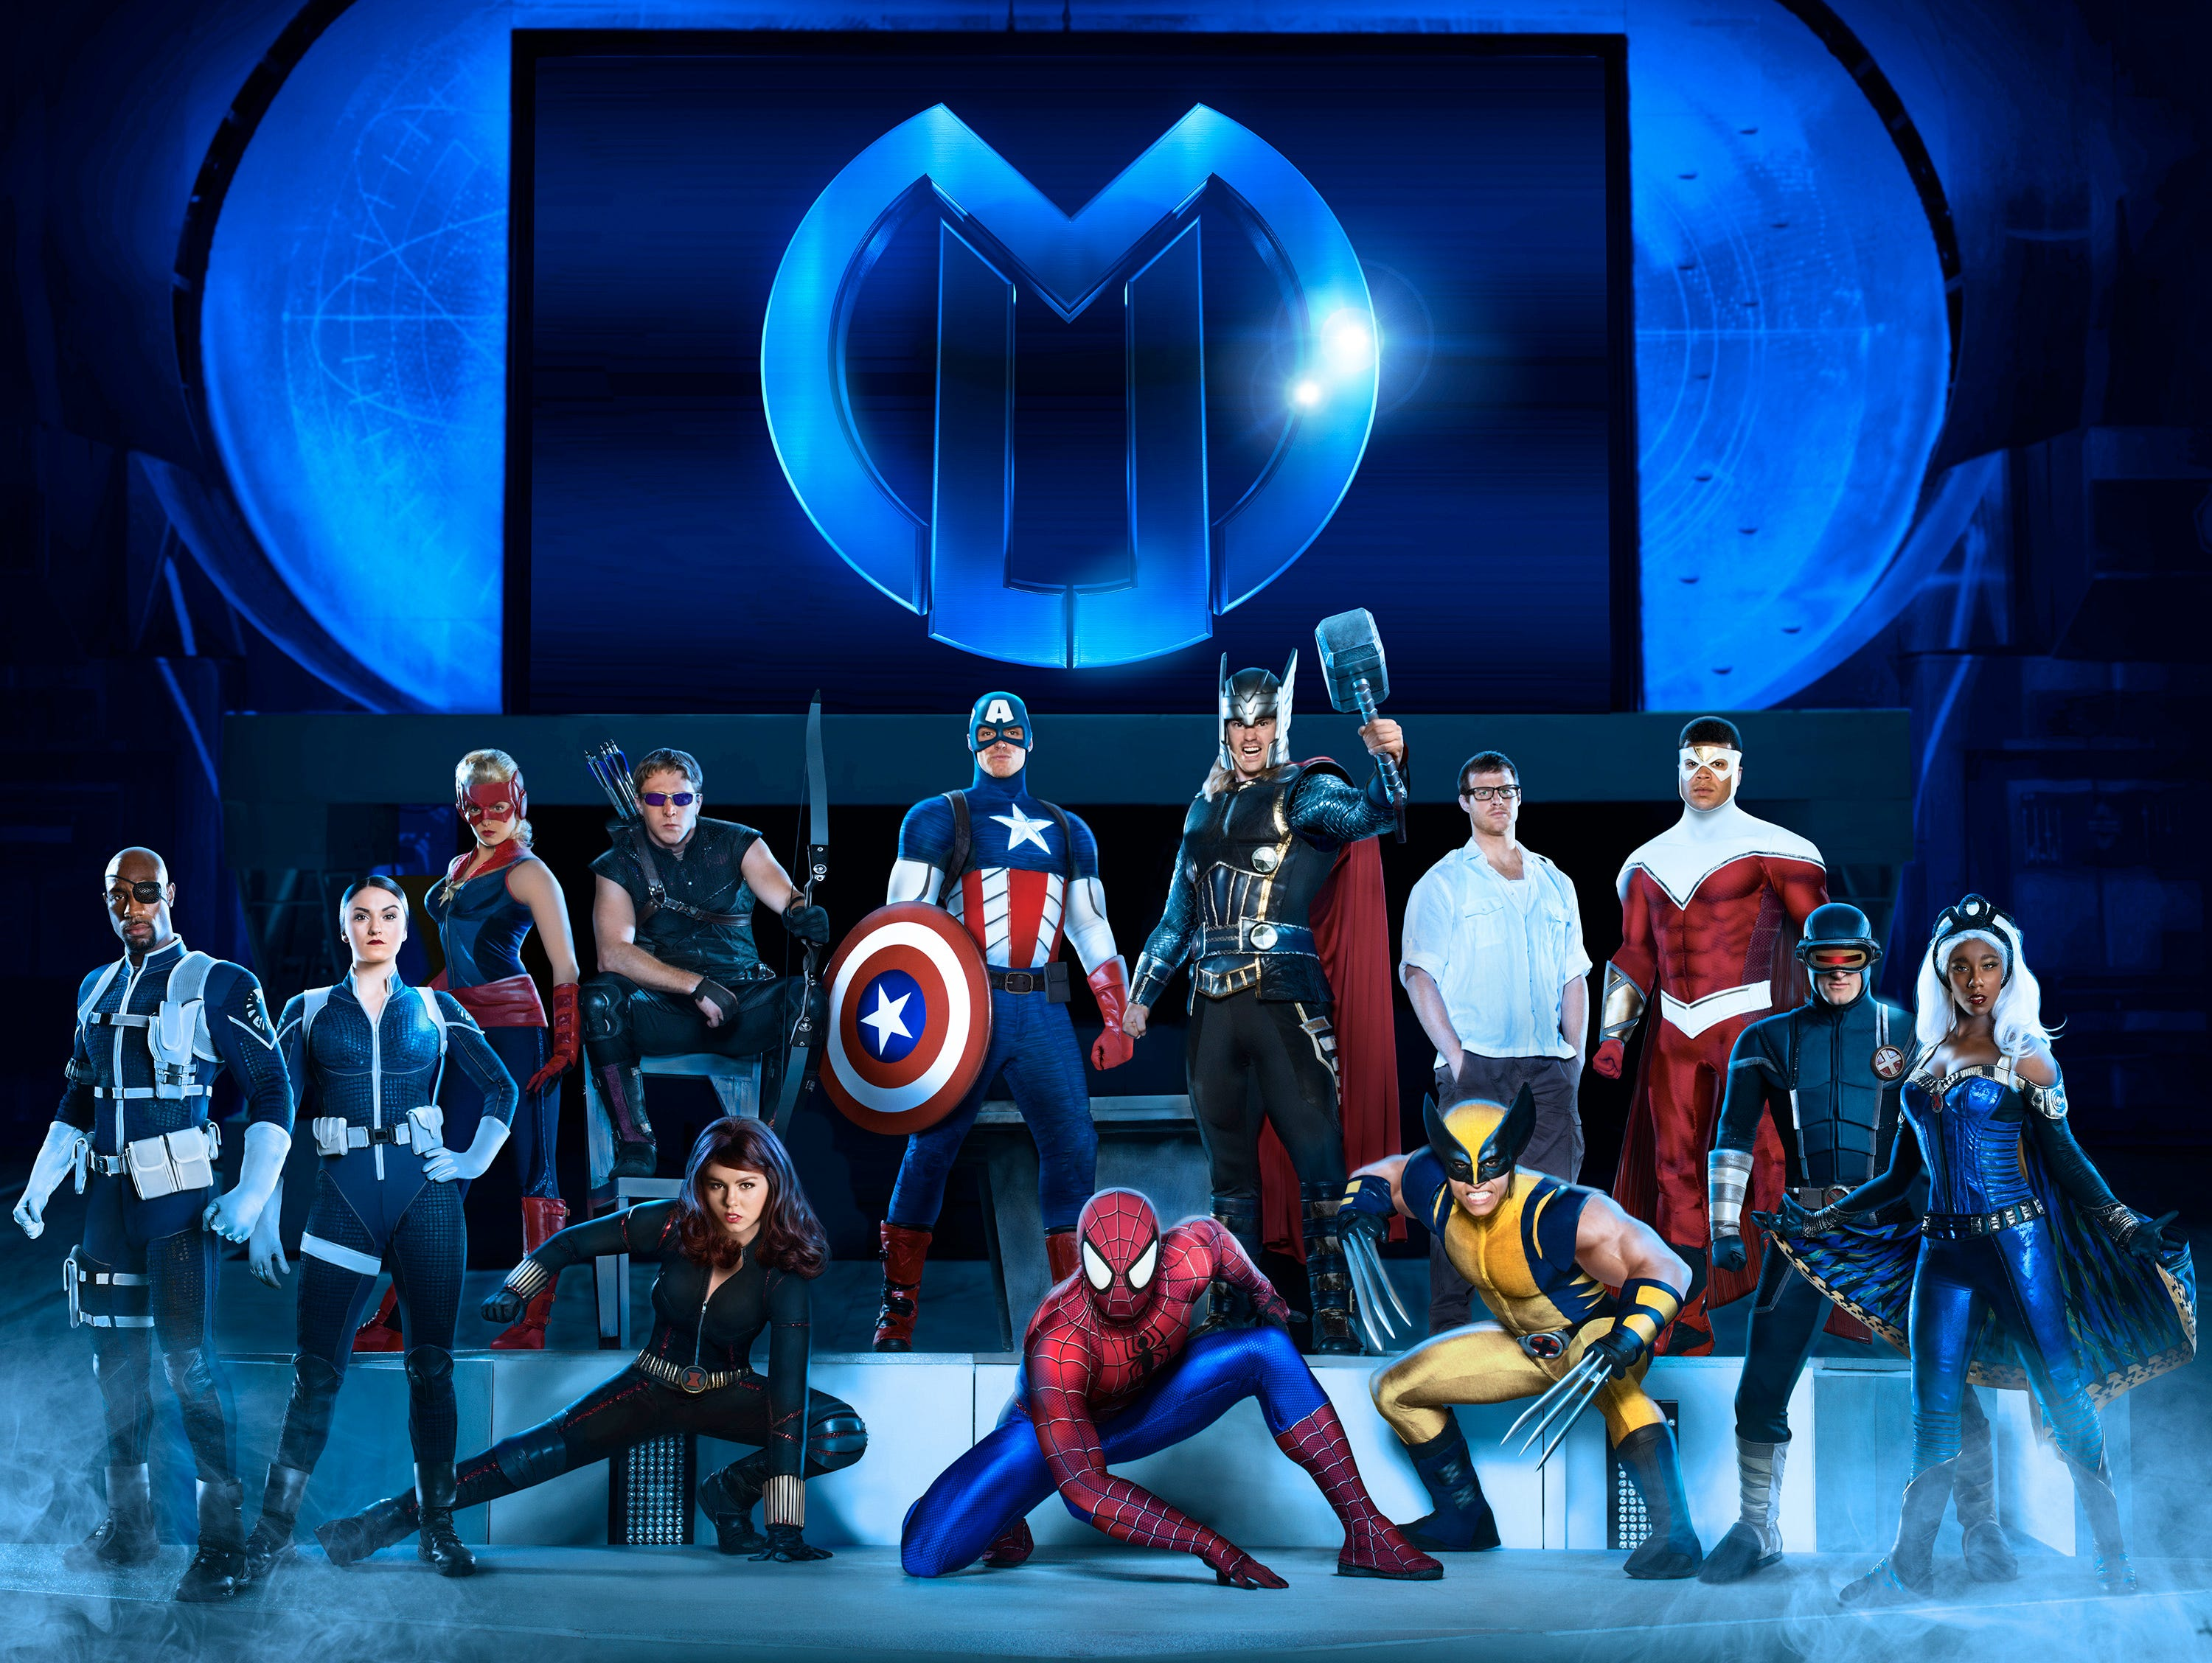 Enter to win 3 suite-level tickets to see Marvel Universe Live on February 3rd plus a $25 VISA gift card!